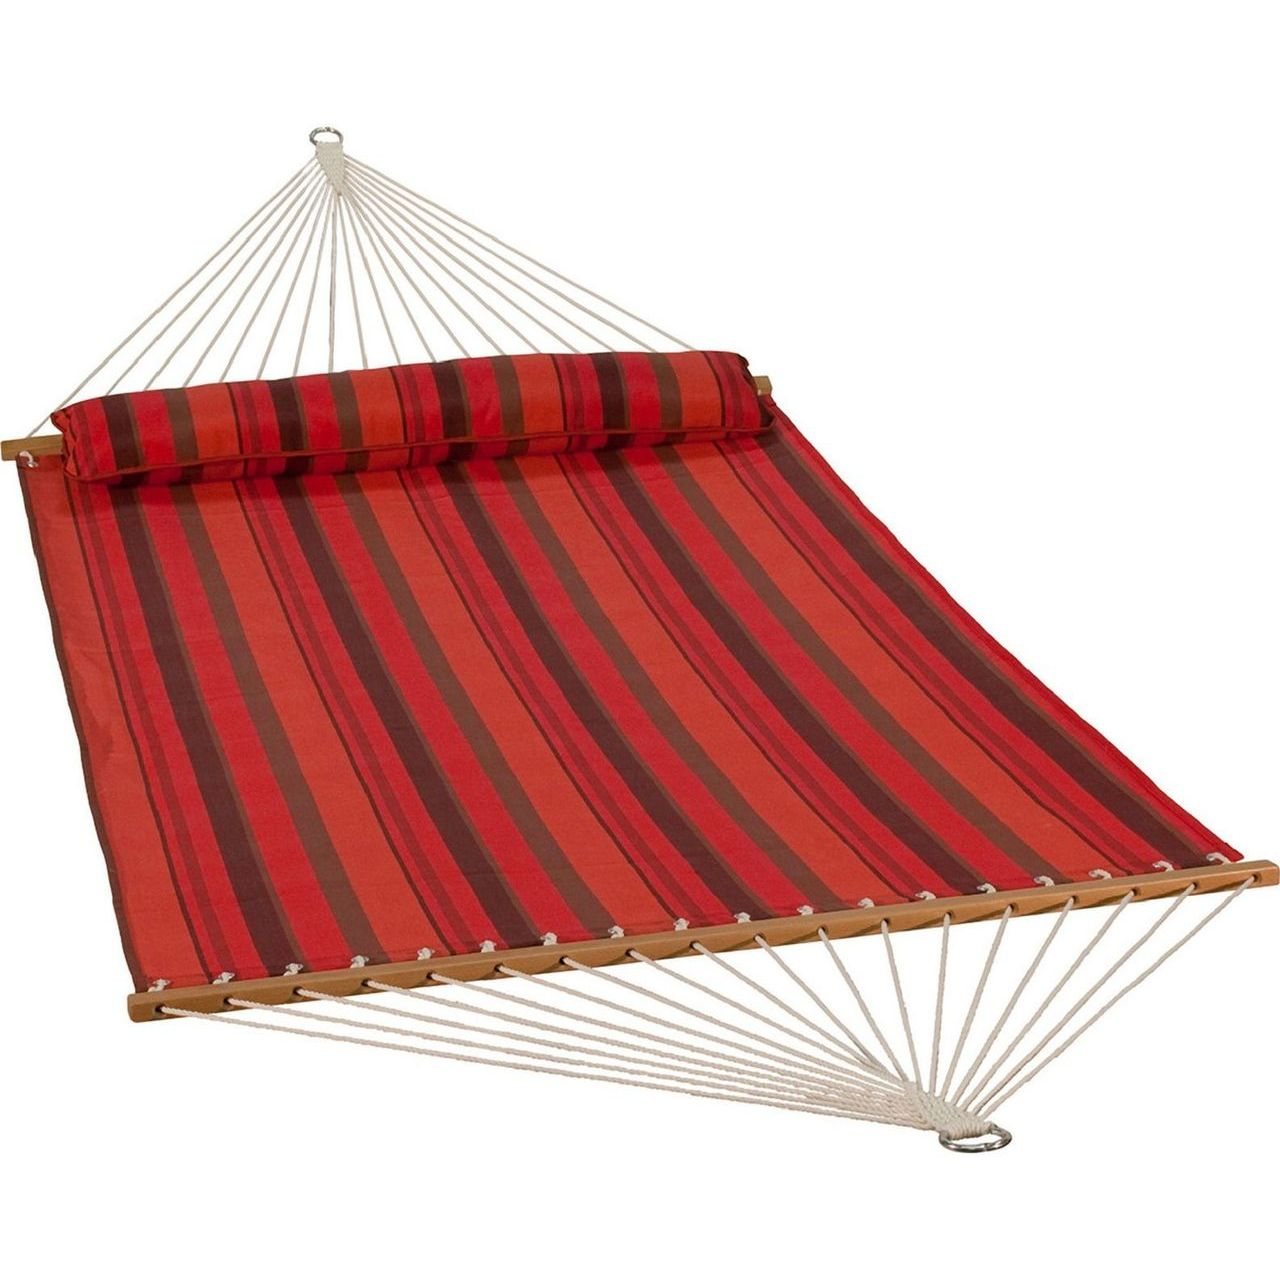 Gleason Quick Dry Hammock With Bolster - Sunset Stripe